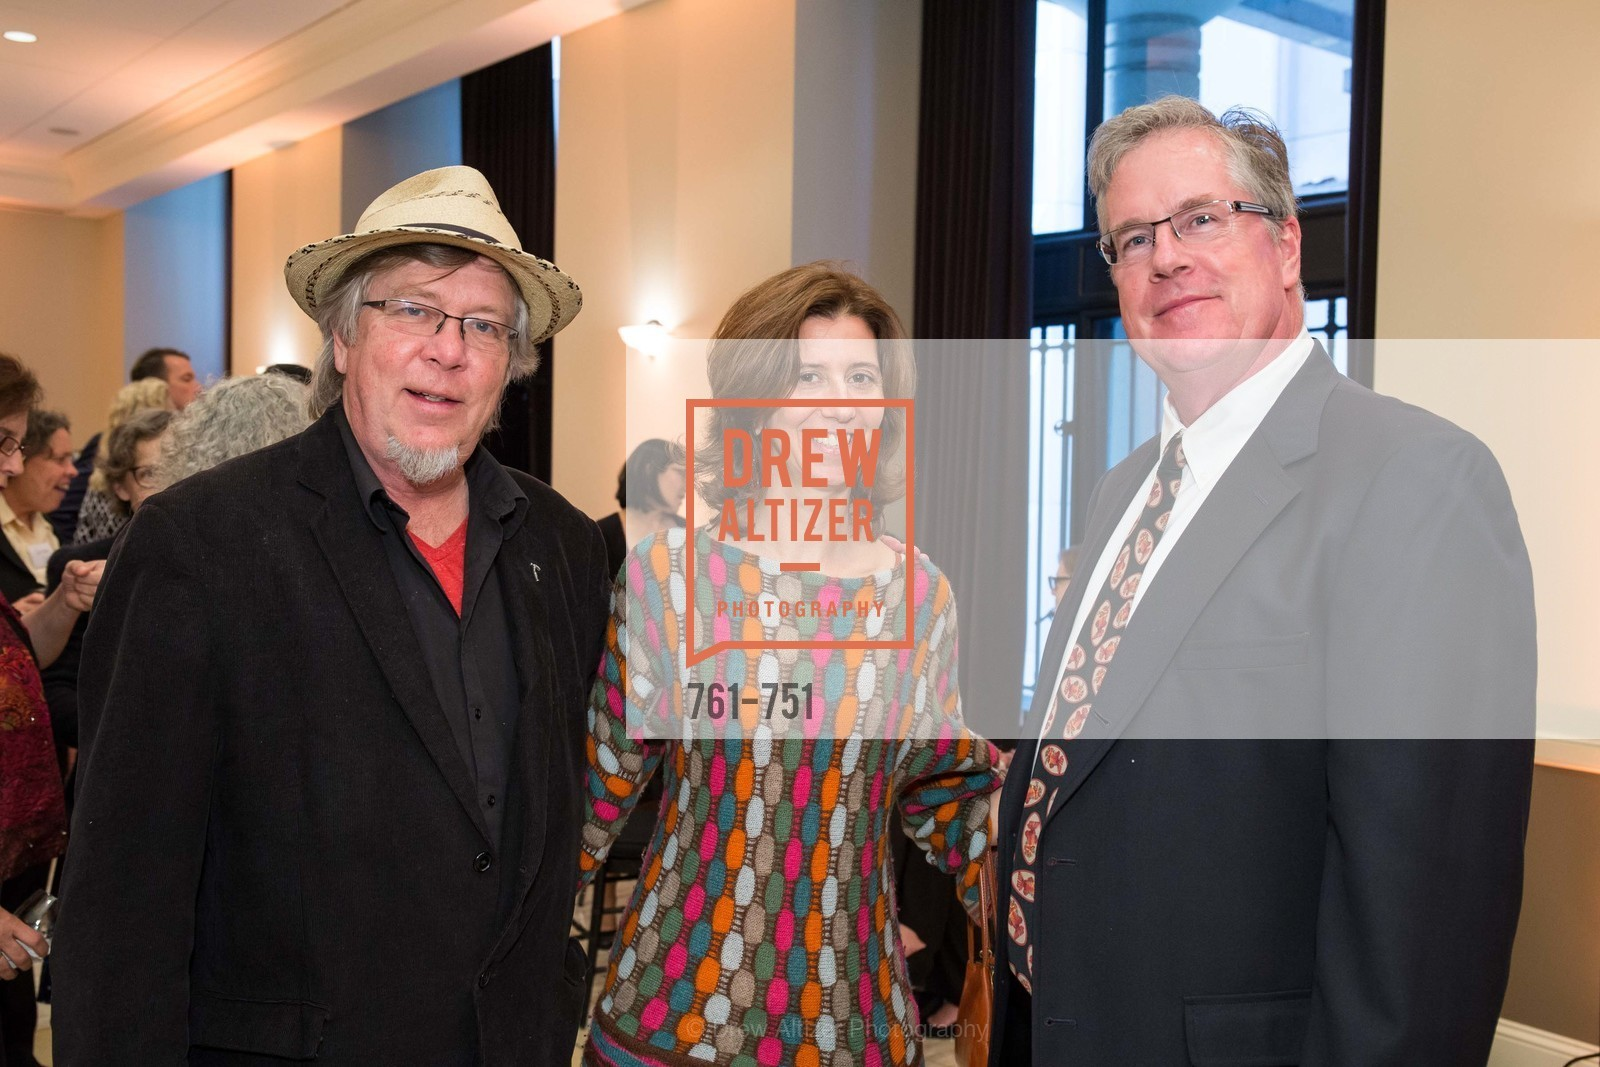 Denny Larson, Tim Little, CENTER FOR ENVIRONMENTAL HEALTH (CEH) 2015 Gala, Bently Reserve, May 28th, 2015,Drew Altizer, Drew Altizer Photography, full-service agency, private events, San Francisco photographer, photographer california